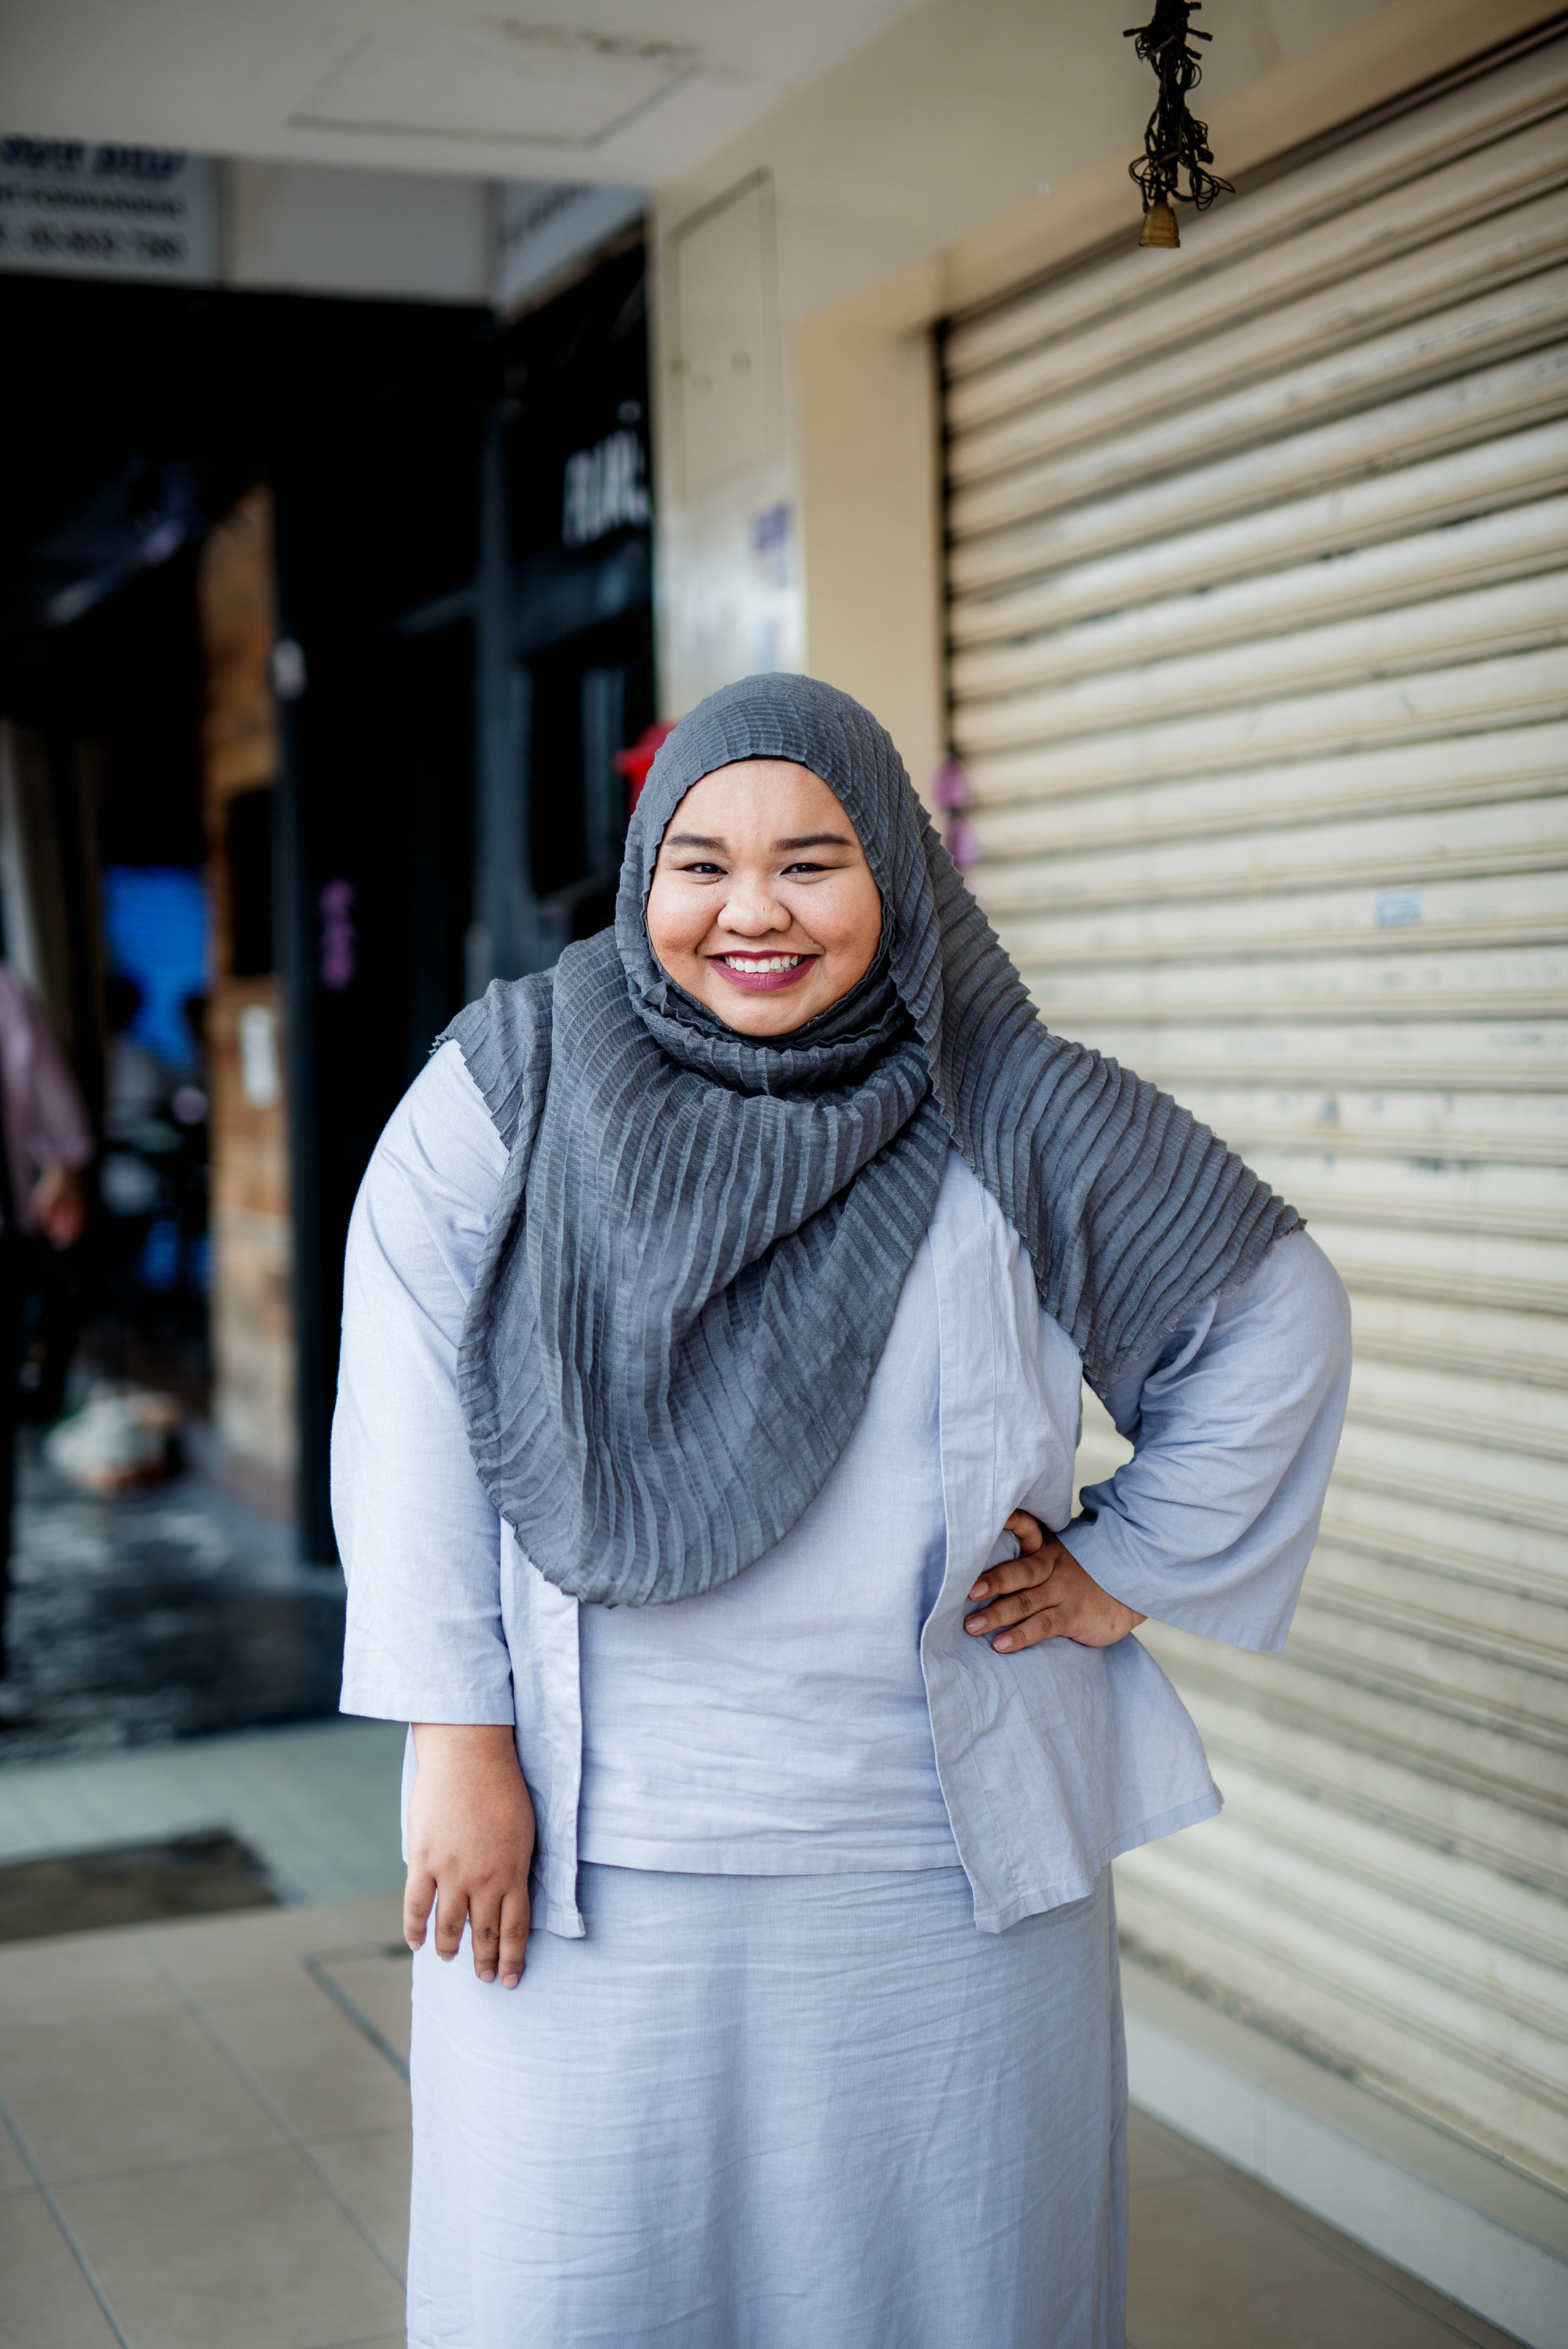 Sime Darby - People of Subang - Suraya - DDY_6078 - Photo by All Is Amazing.jpg